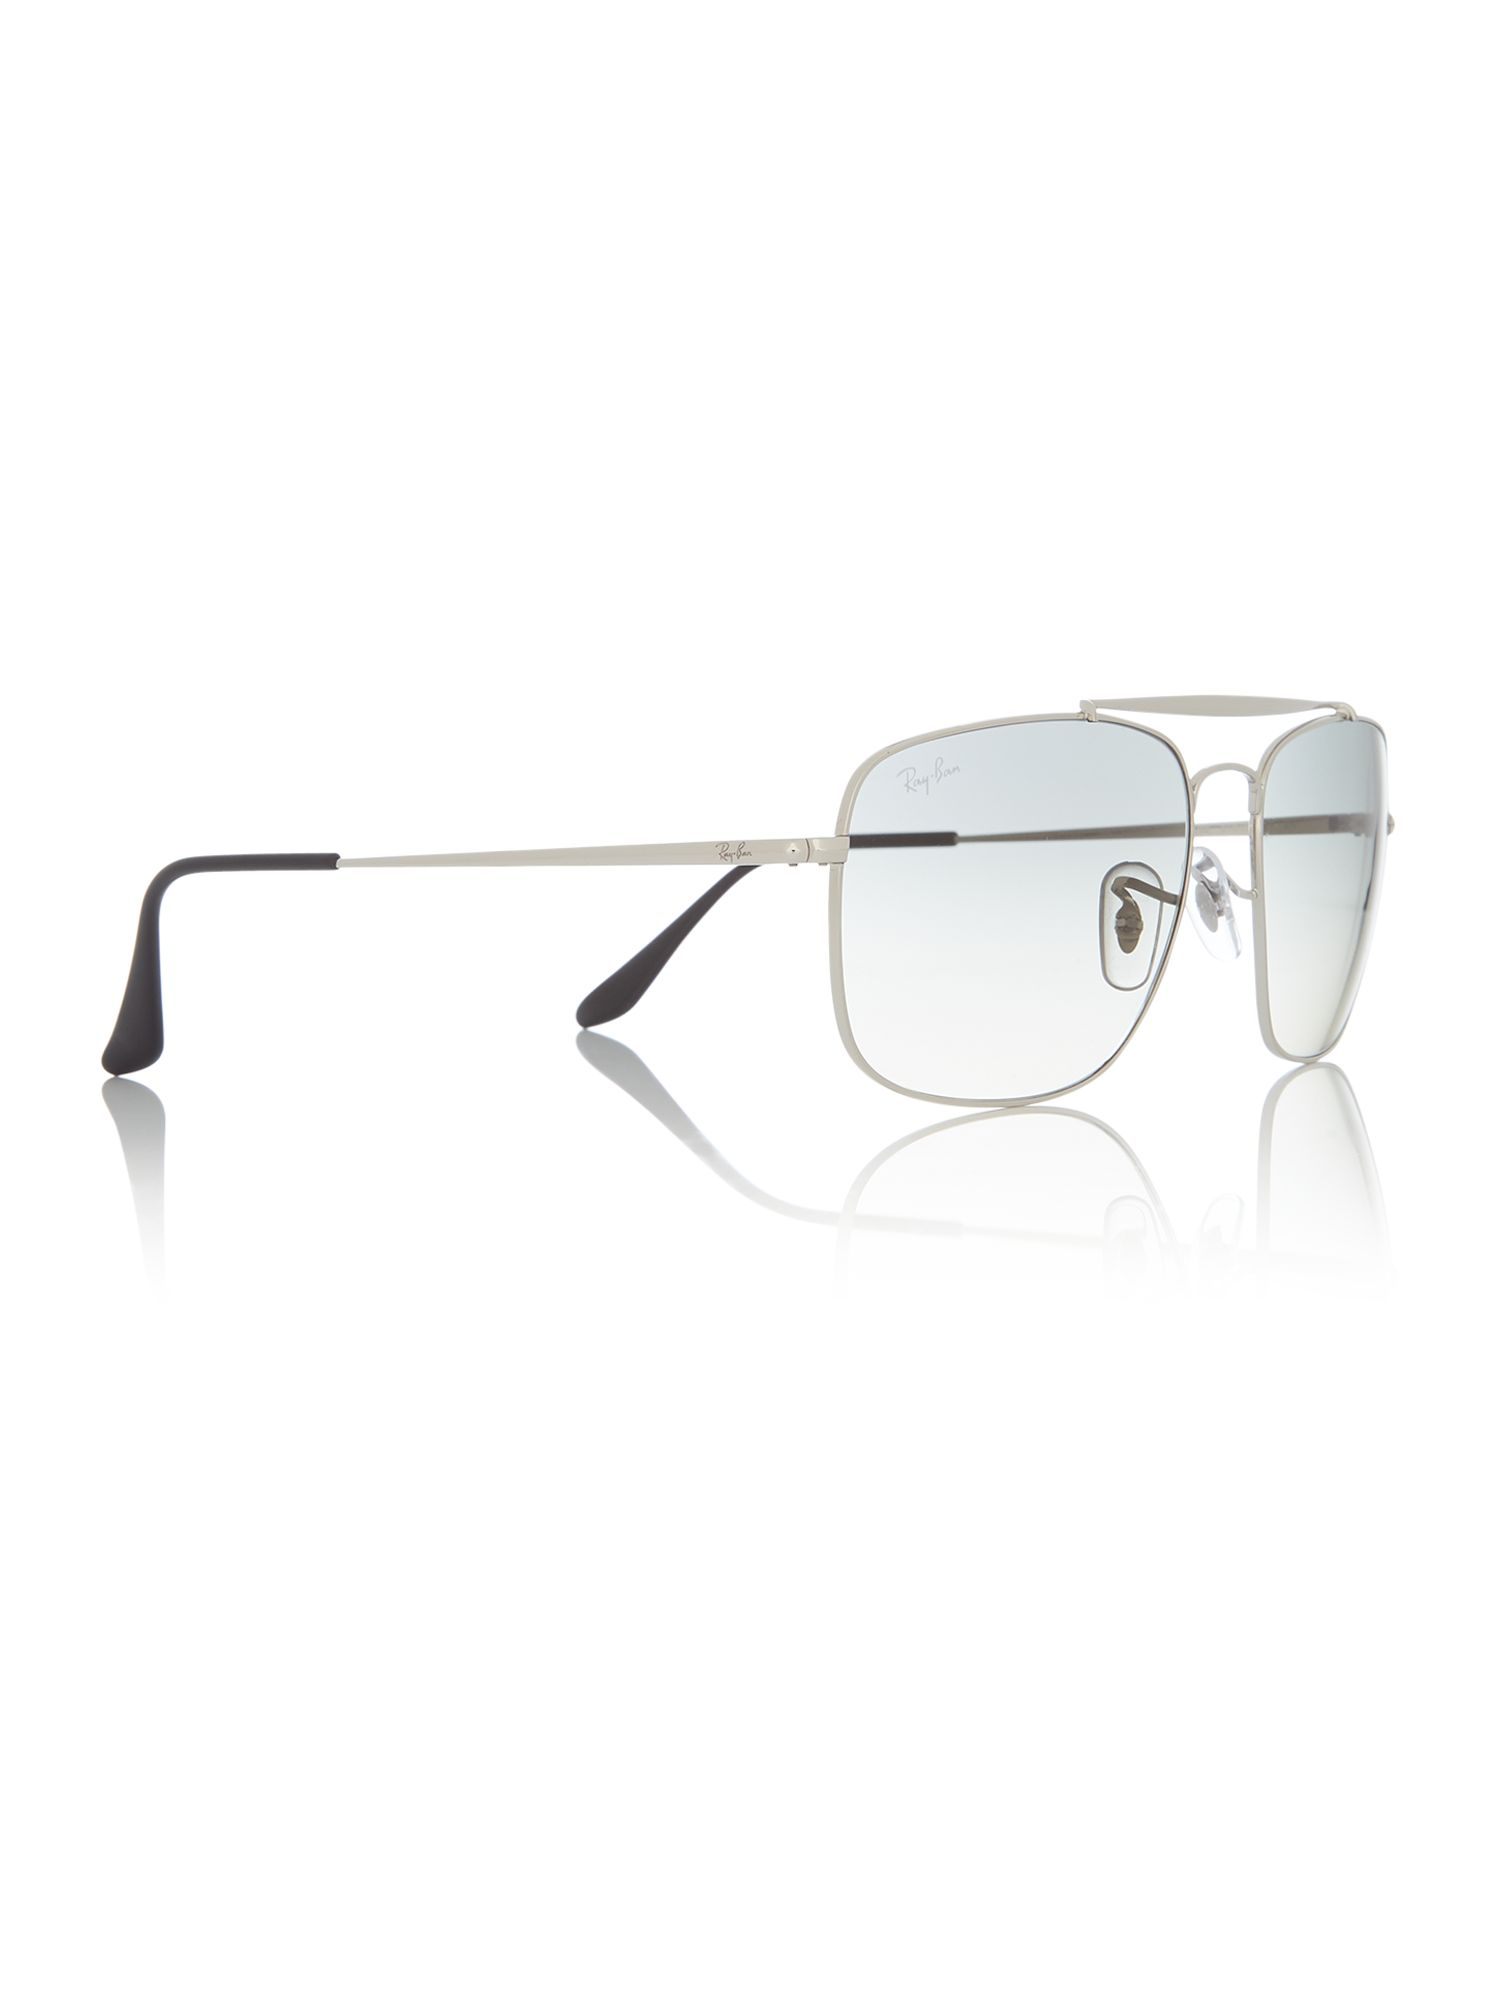 men s ray ban sunglasses buy men s ray bans house of fraser Ray-Ban RB2027 ray ban silver oo9411 square sunglasses